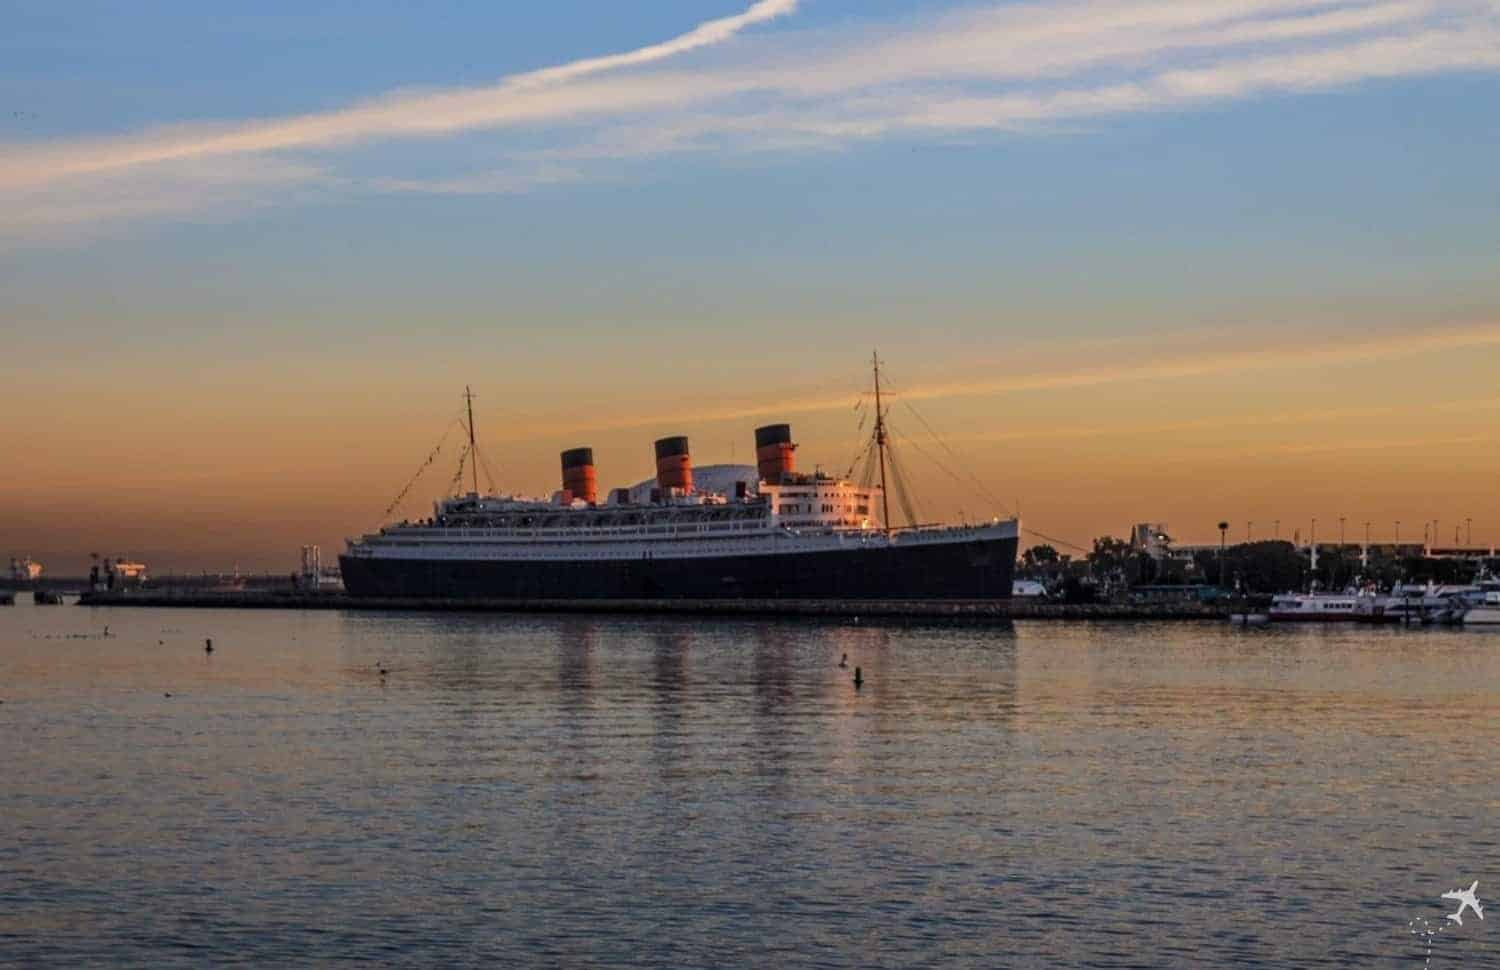 Queen Mary Los Angeles, USA